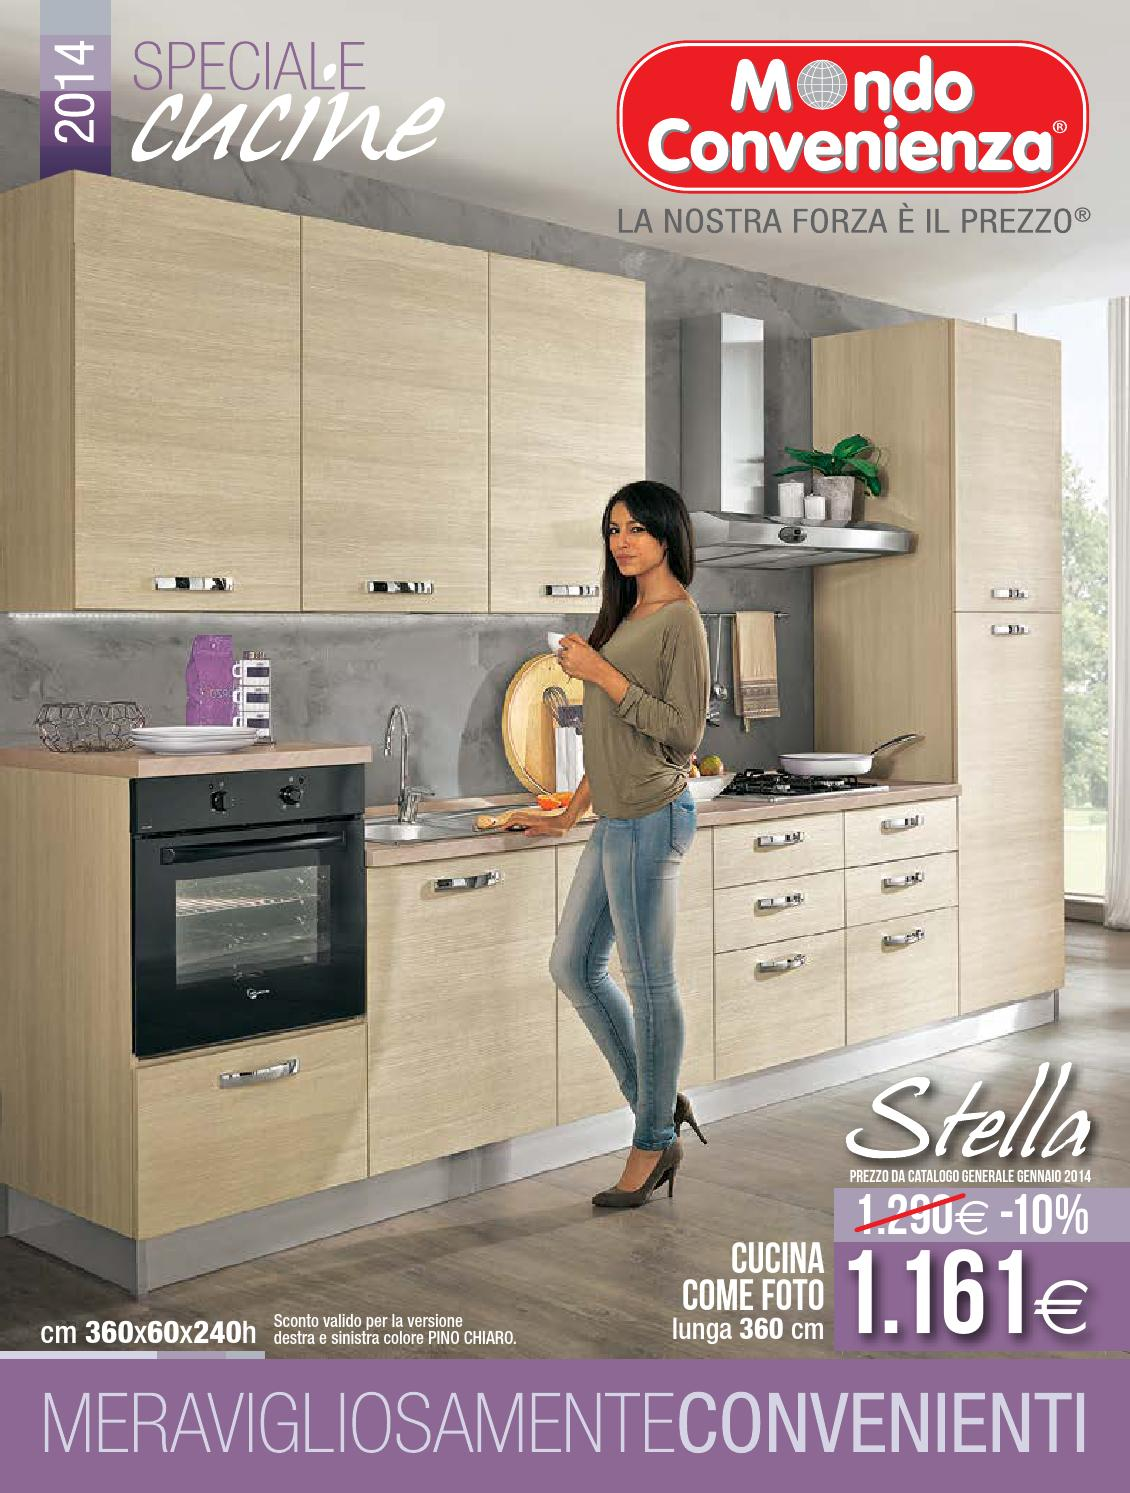 Speciale cucine 2014 by Francesca - issuu